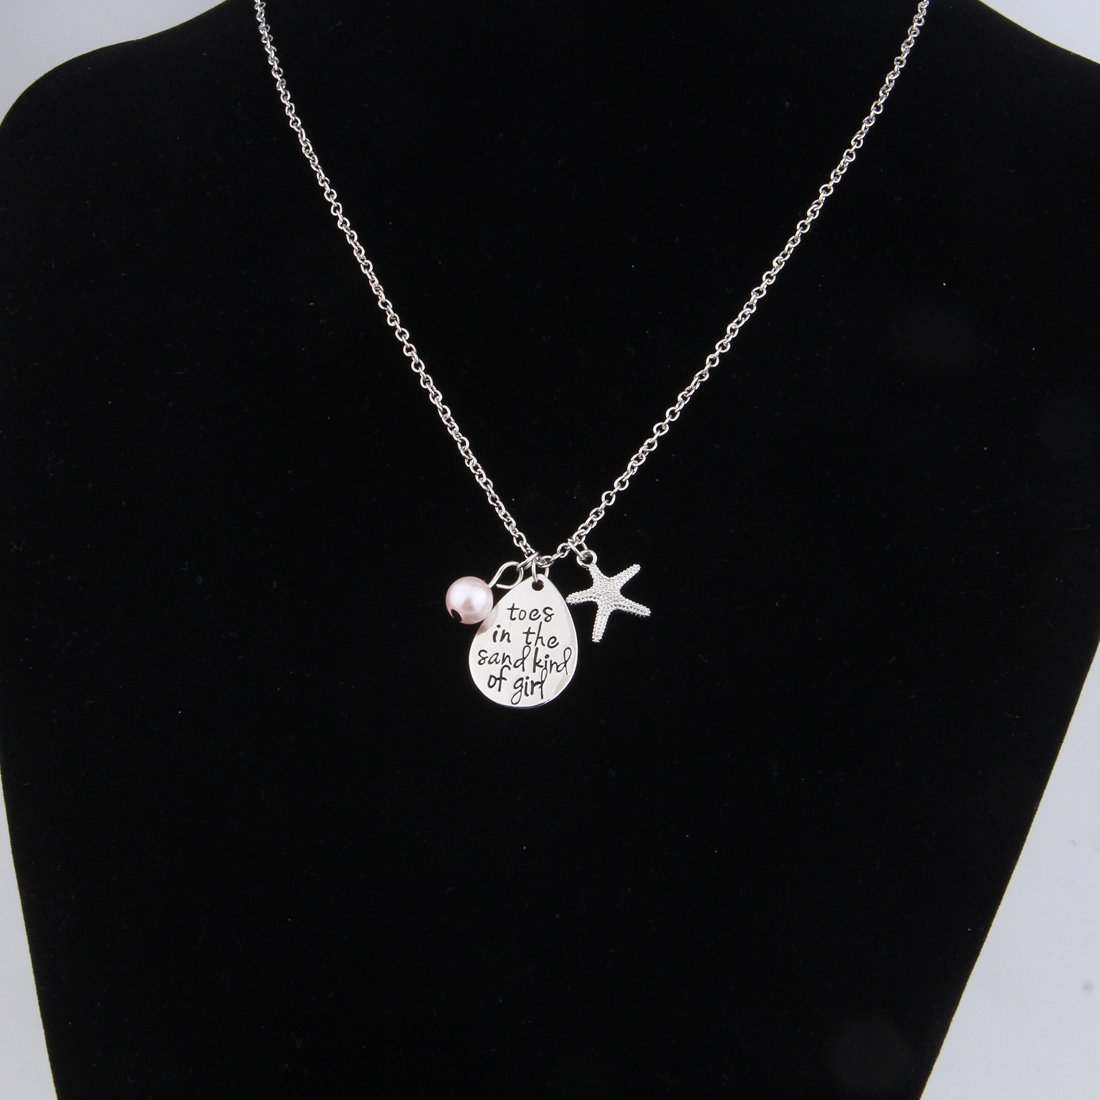 ENSIANTH Toes In The Sand Kind of Girl Engraved Charms Necklace Beach Jewelry with Starfish (waterdrop necklace) by ENSIANTH (Image #2)